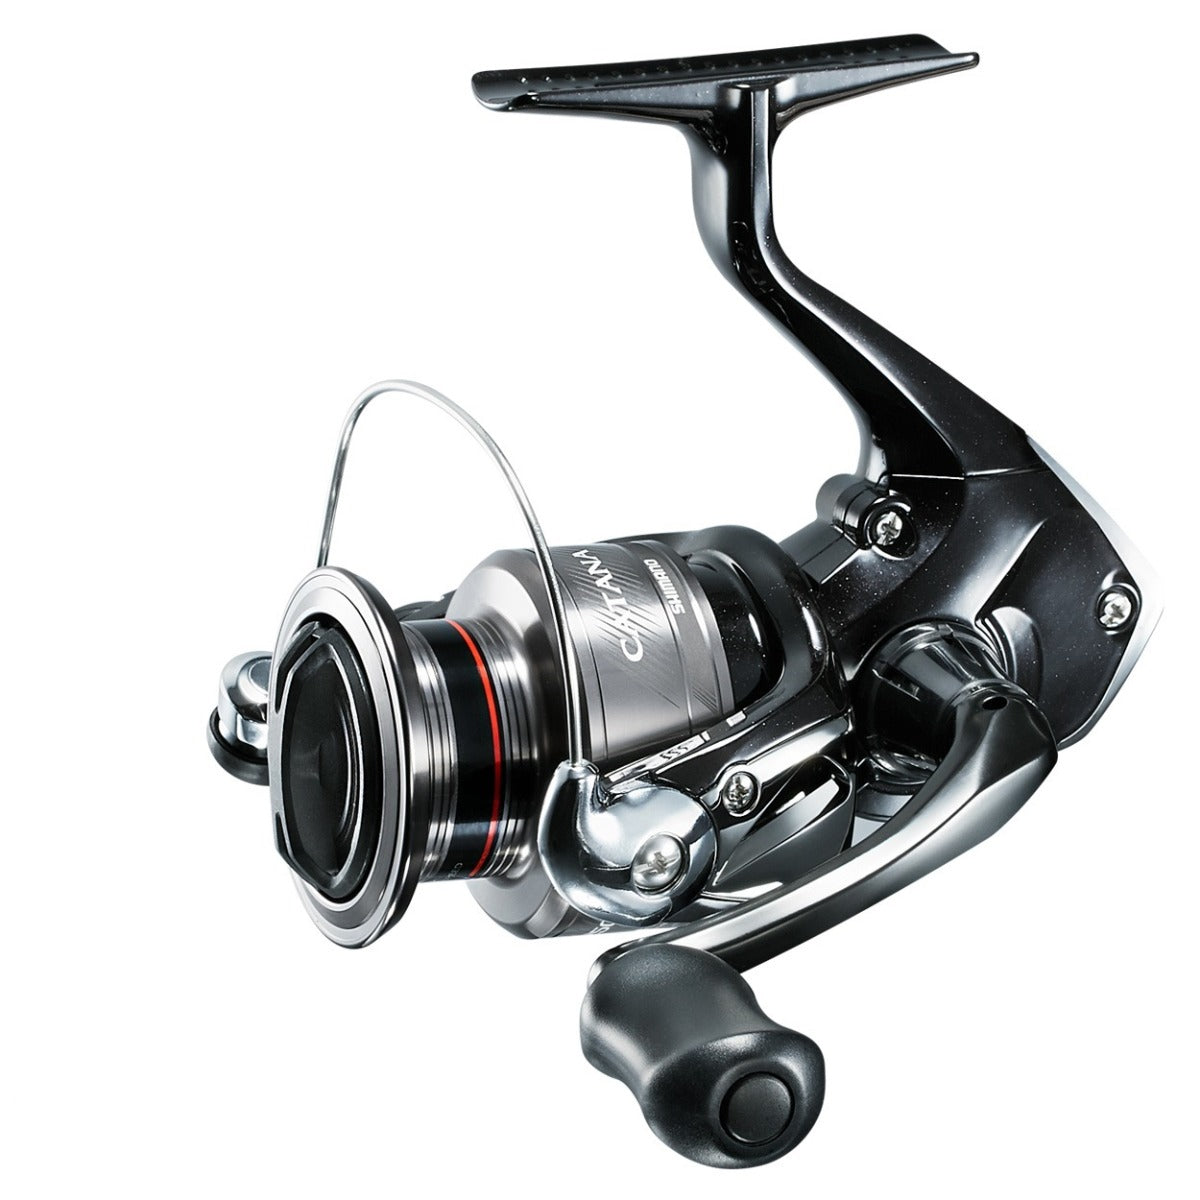 Shimano Catana FD Spinning Reel